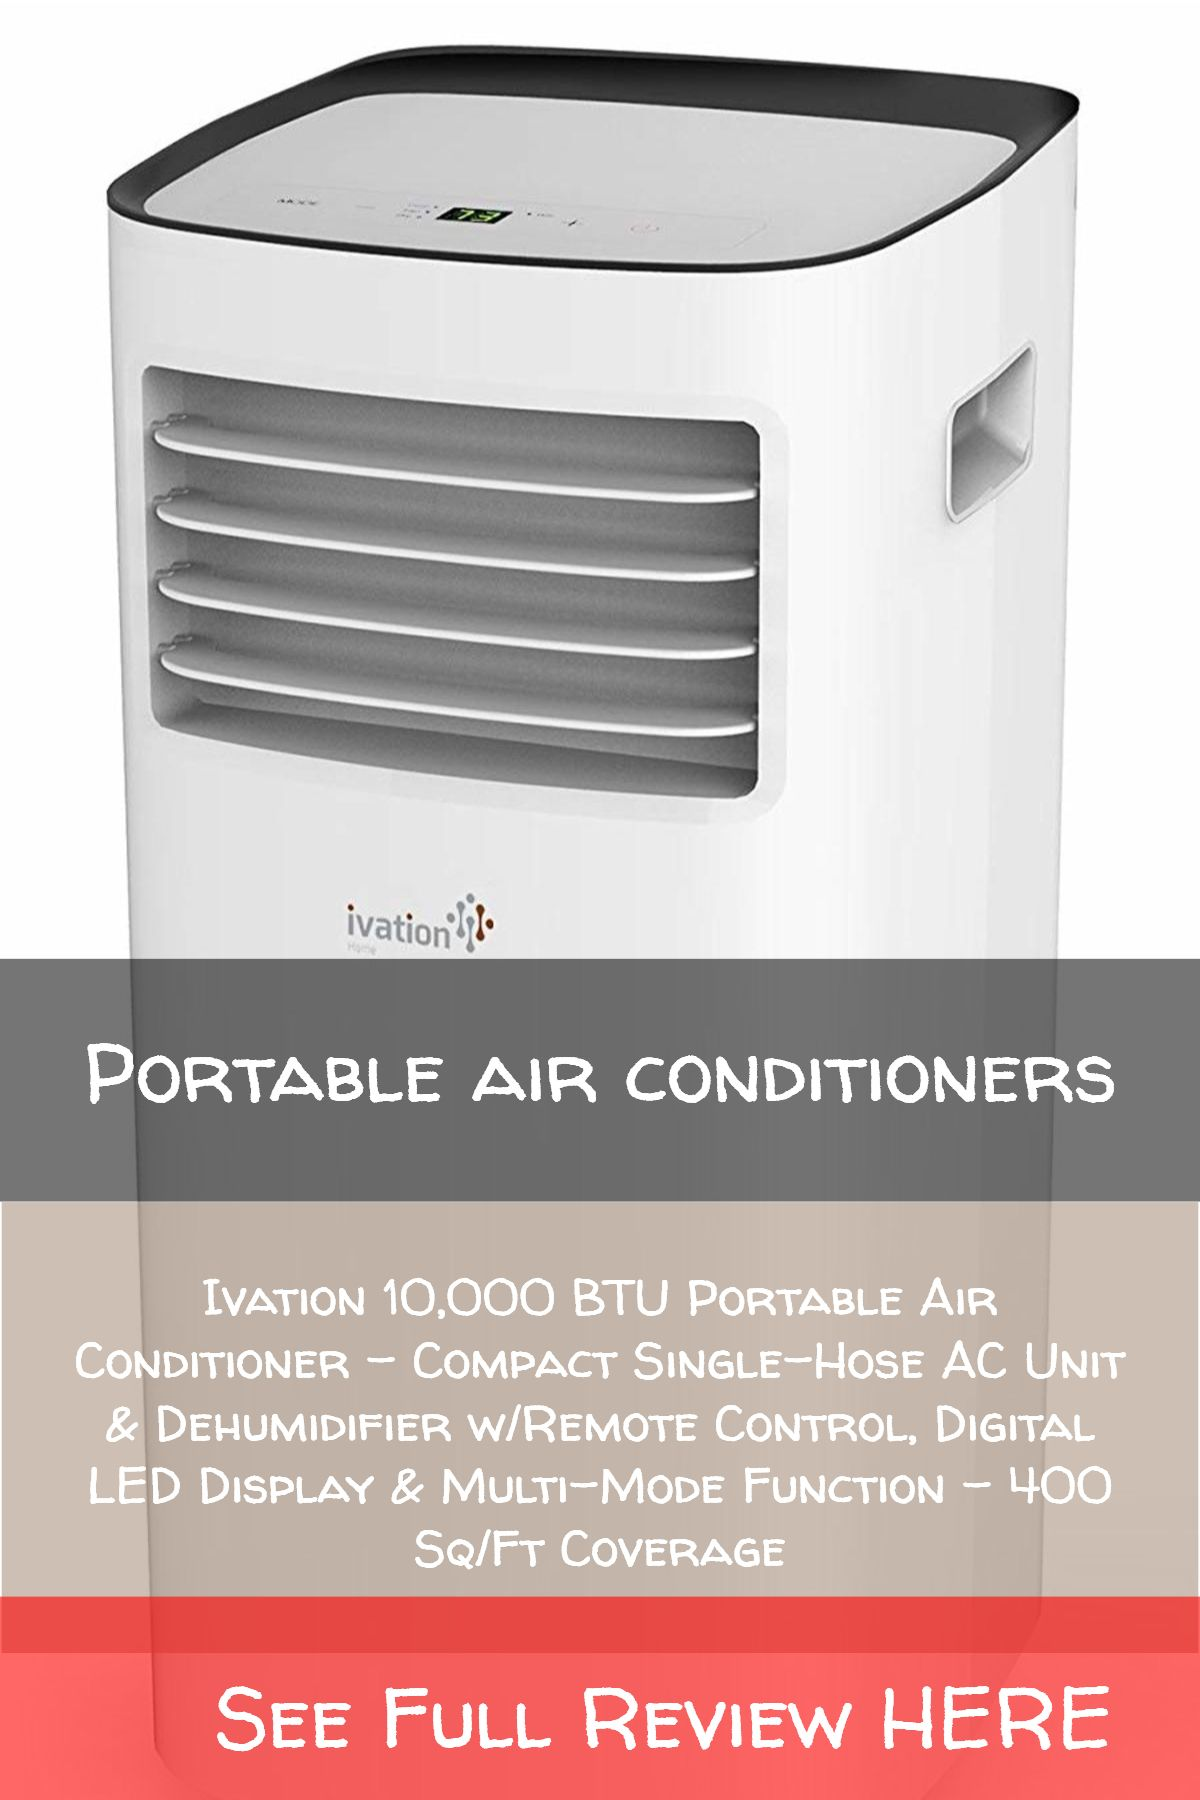 Portable air conditioners / Ivation 10,000 BTU Portable